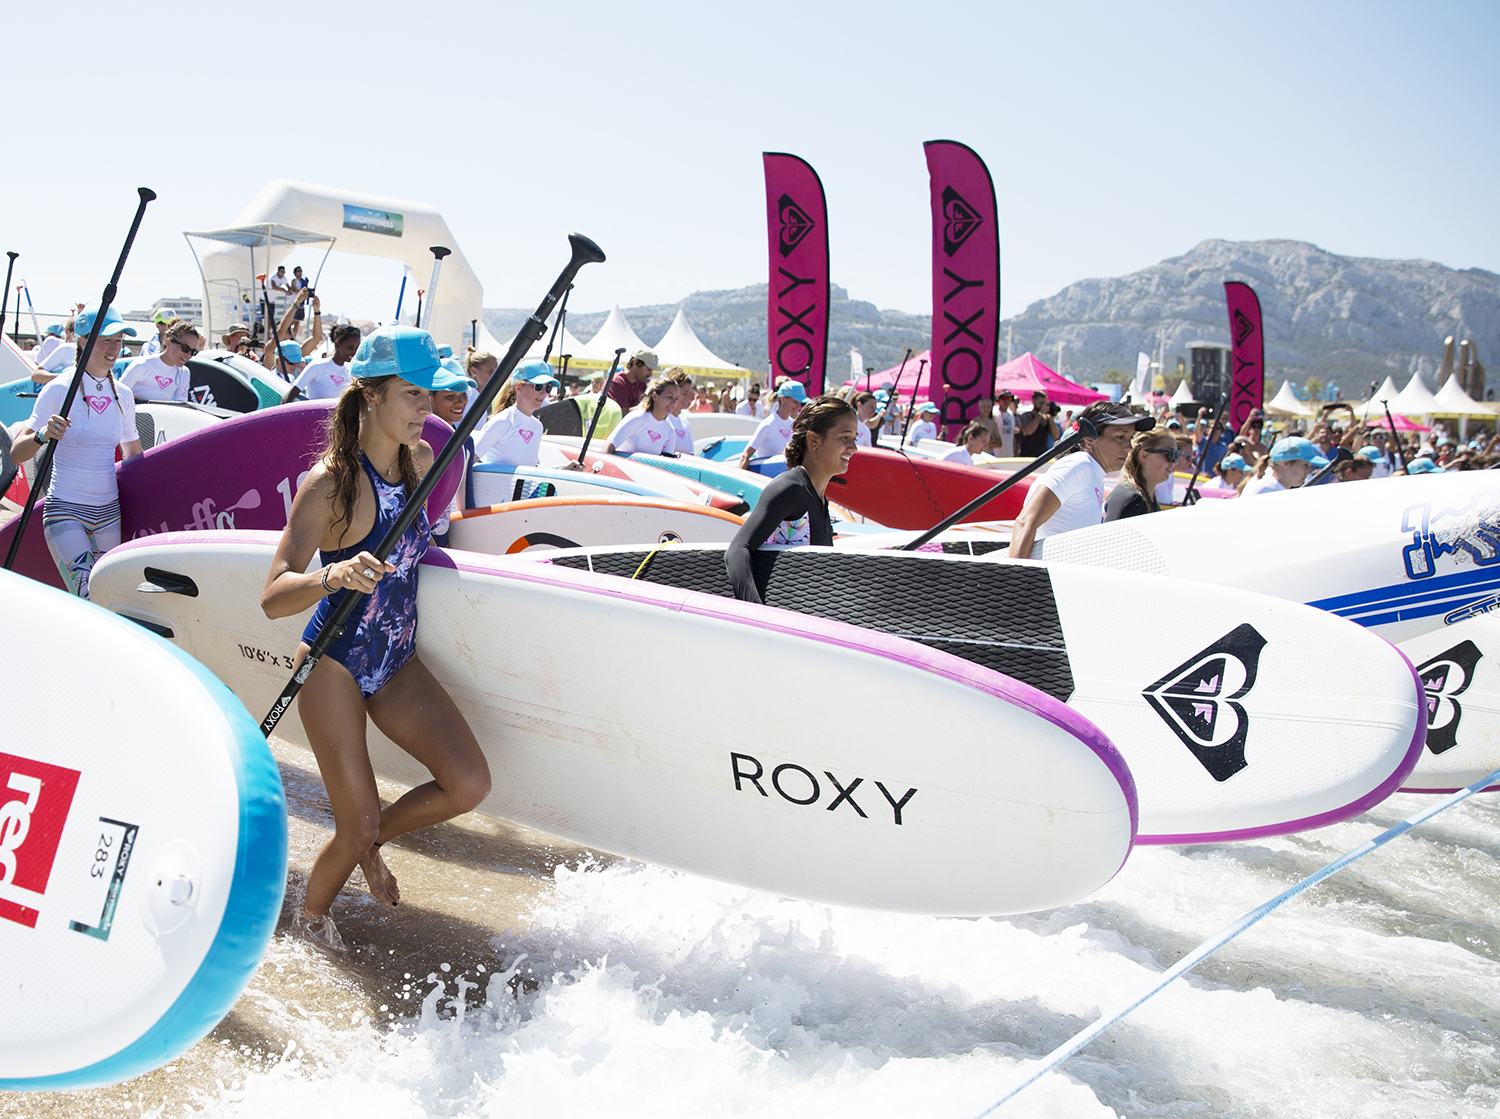 #ROXYfitness Marseille by the Numbers